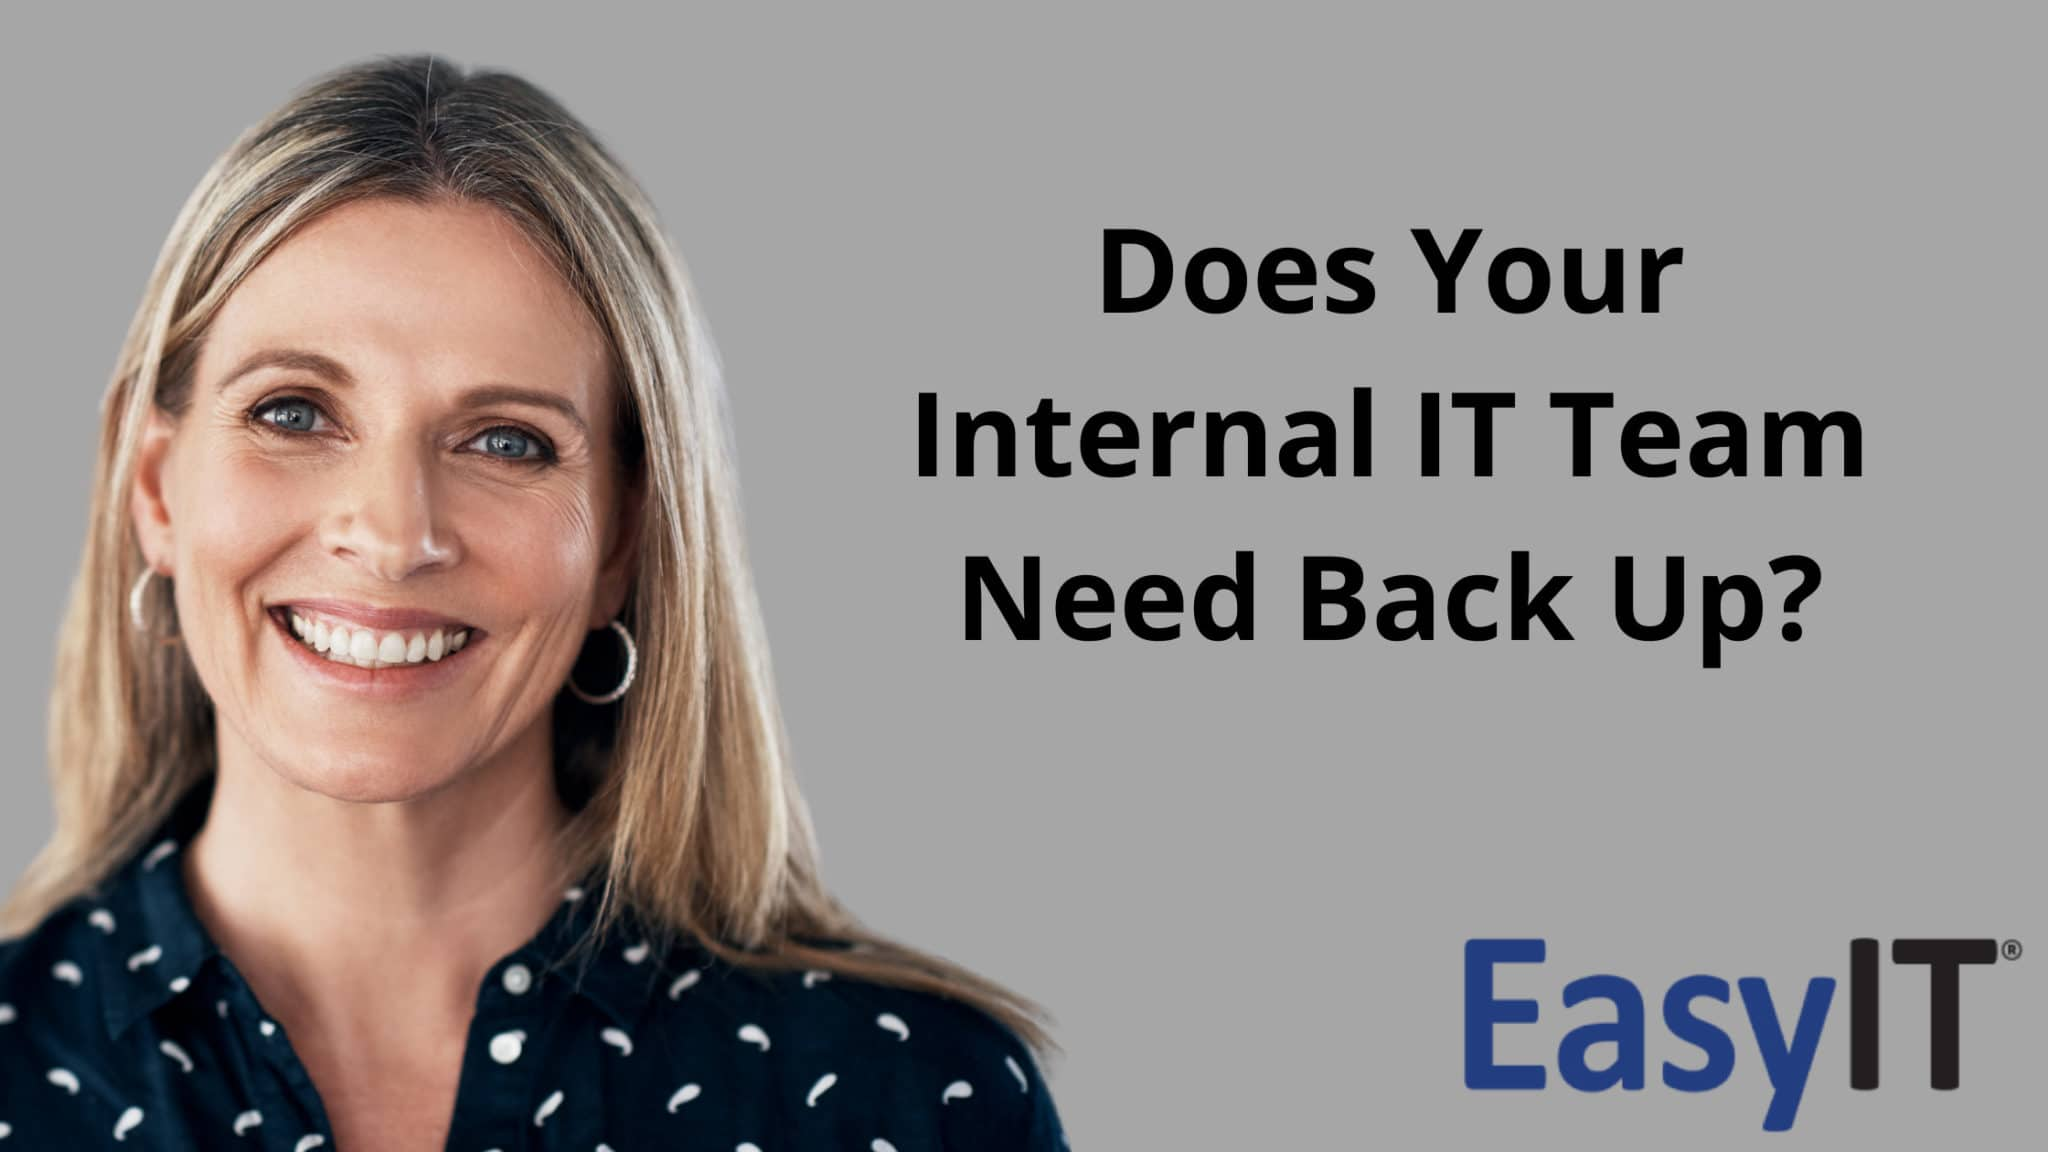 Does Your Internal IT Team Need Back Up?